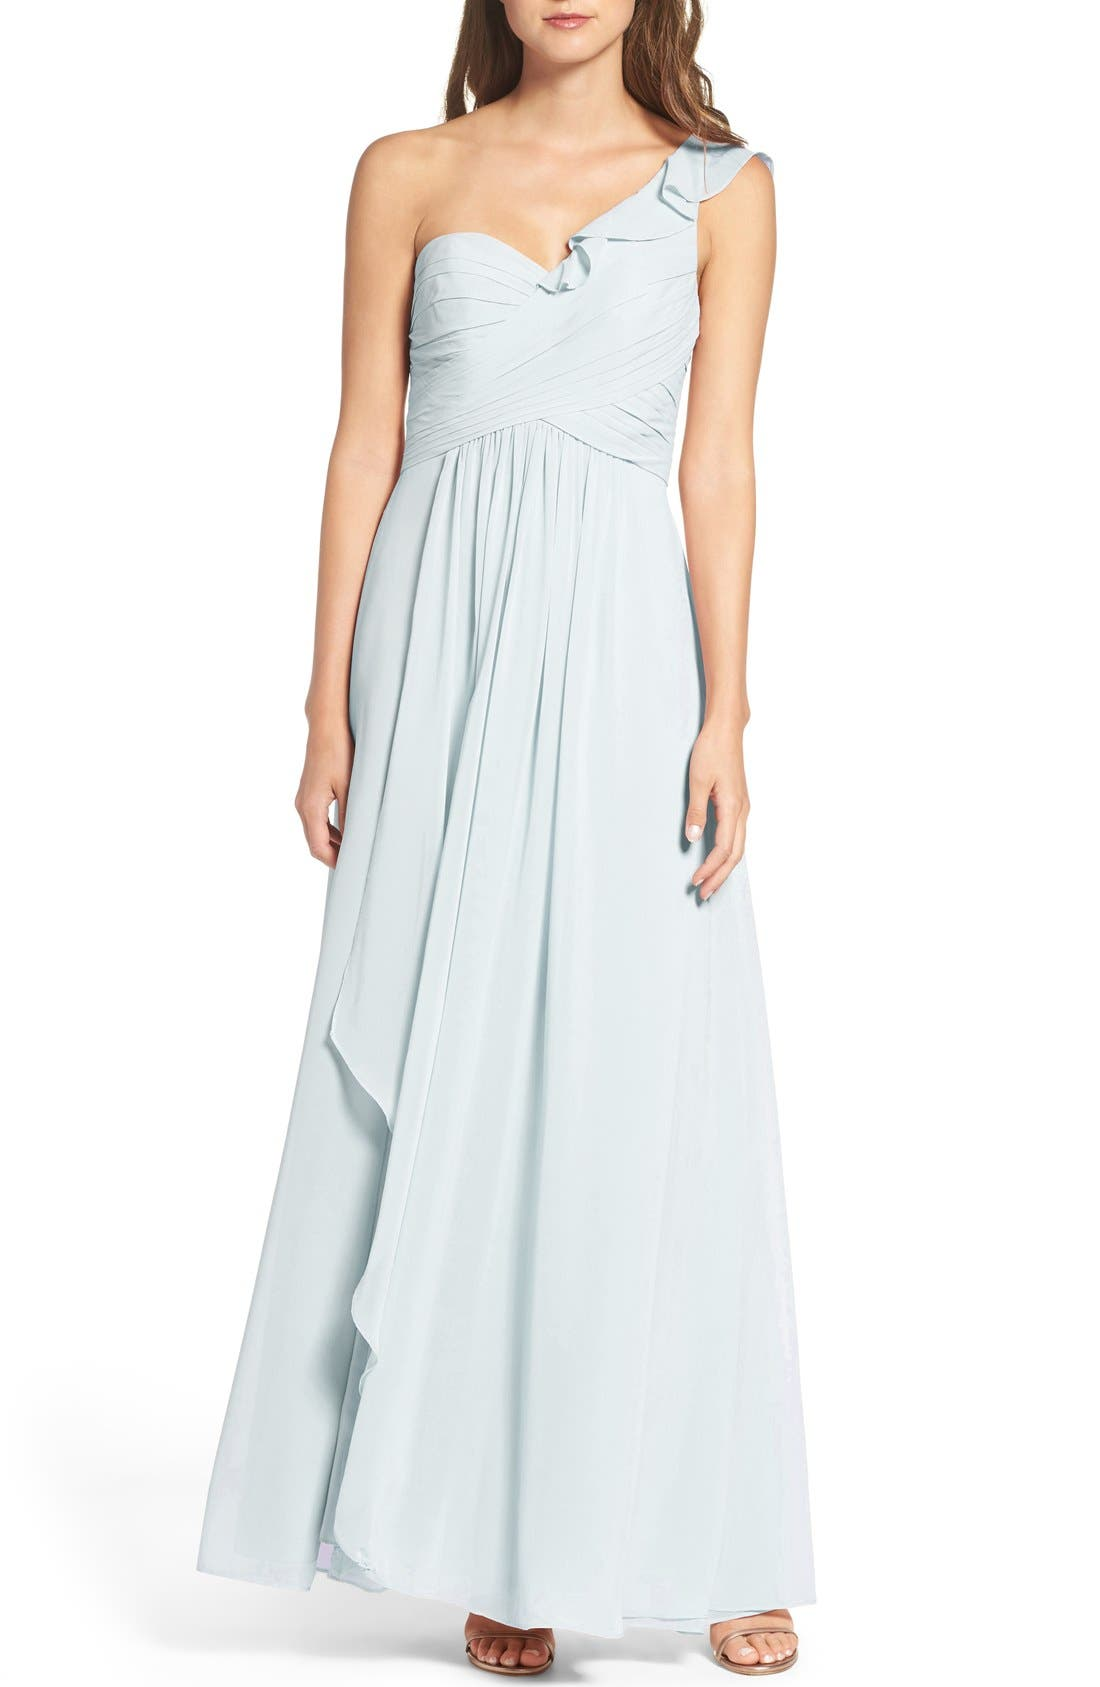 Alternate Image 1 Selected - WTOO One-Shoulder Chiffon Dress